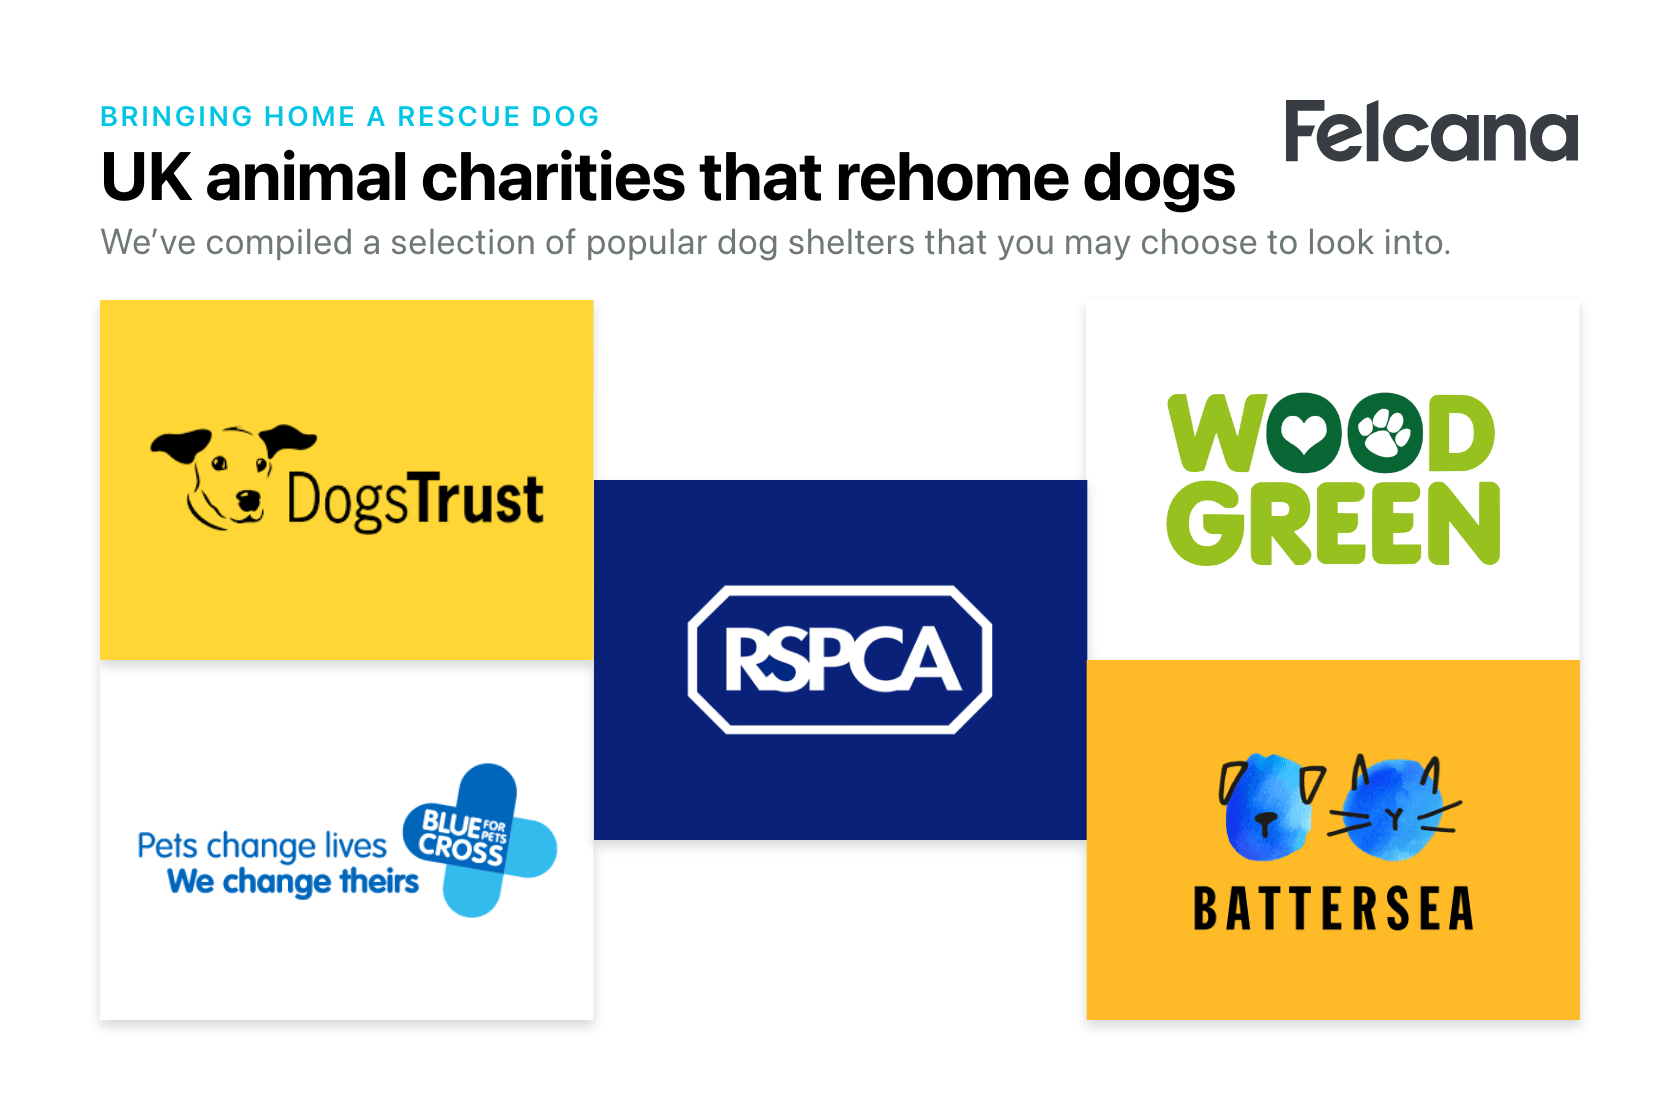 Compilation of popular dog shelters that rehome dogs